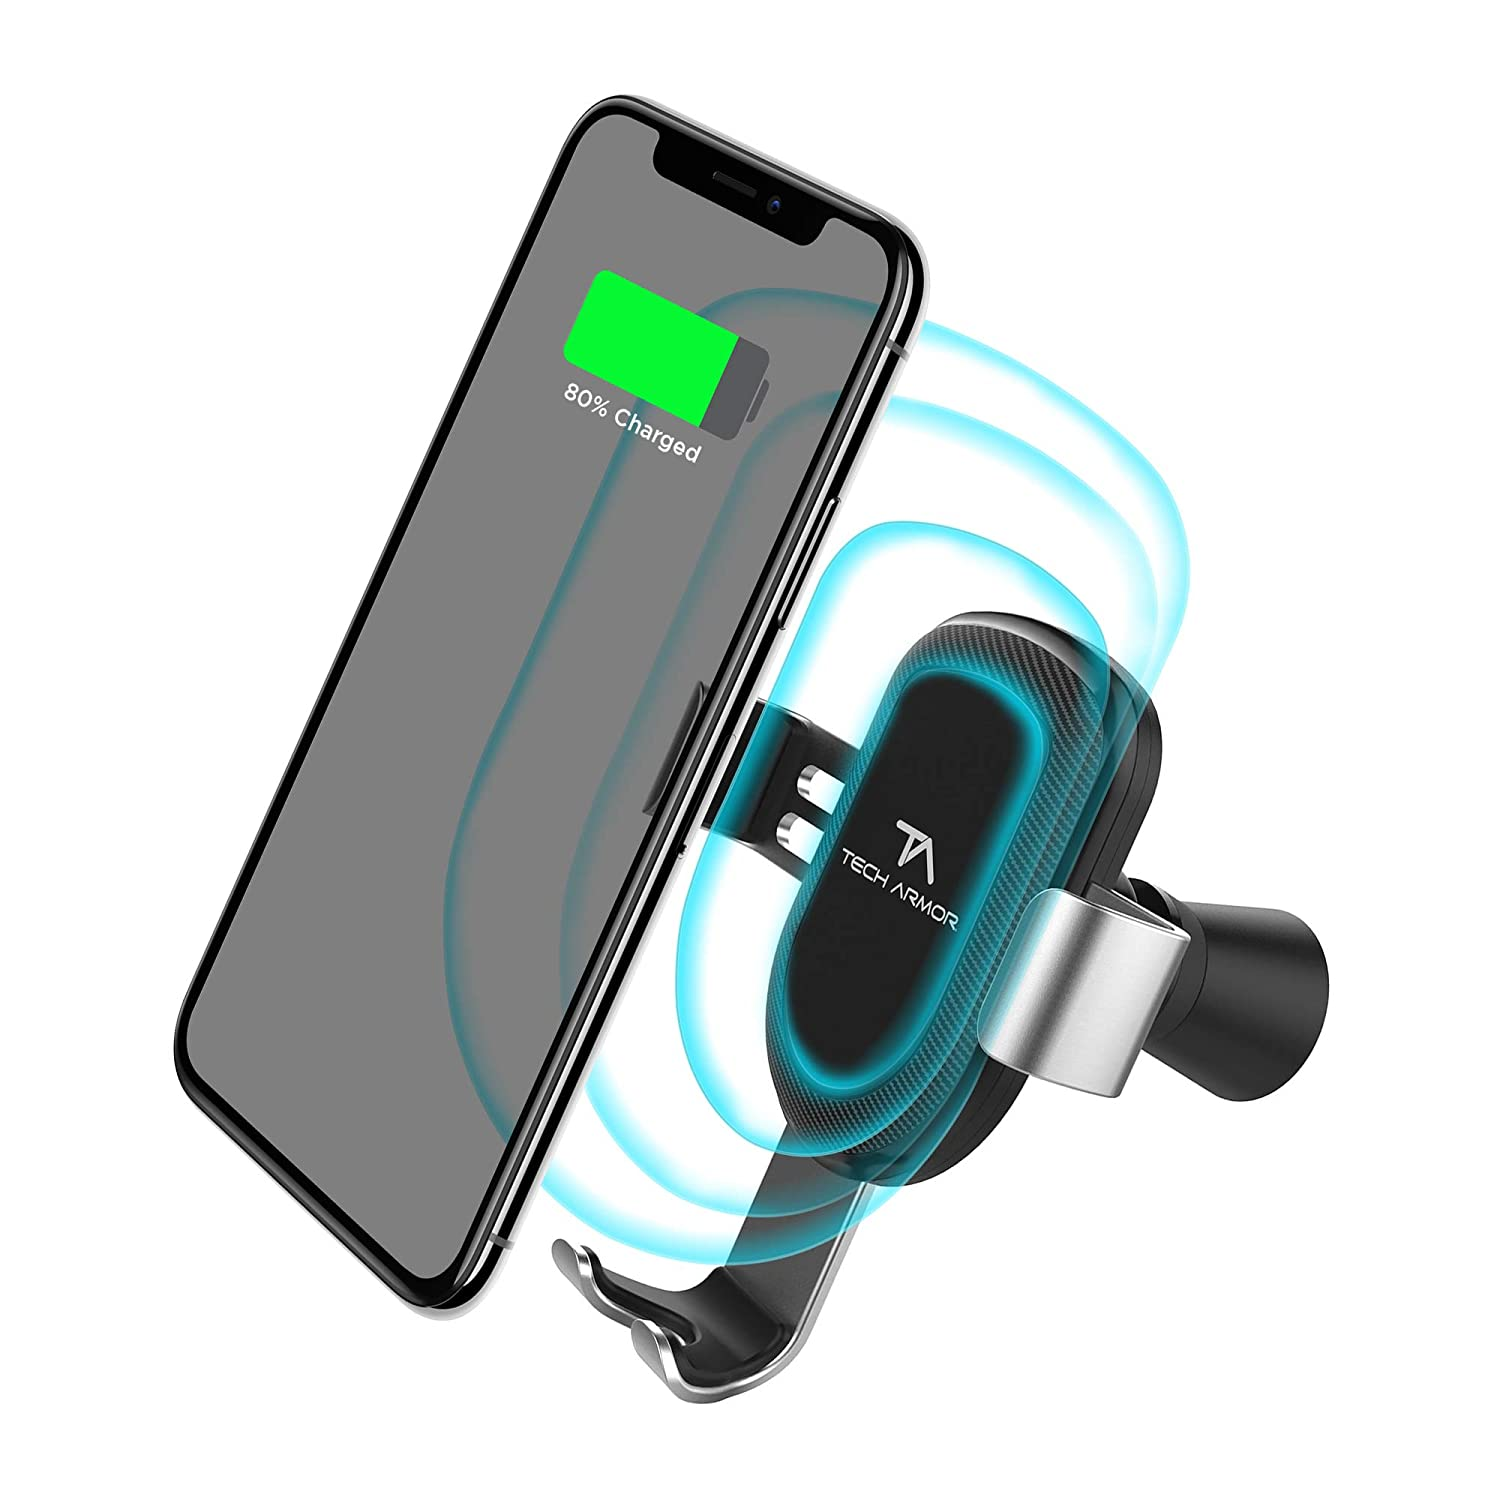 Tech Armor Wireless Car Charger Fast Qi Charging Compatible for iPhone X//Xs//XS Max // 8//8 Plus//Samsung Galaxy S9 // S8 // Note 8//9 and More Black Air Vent Car Mount